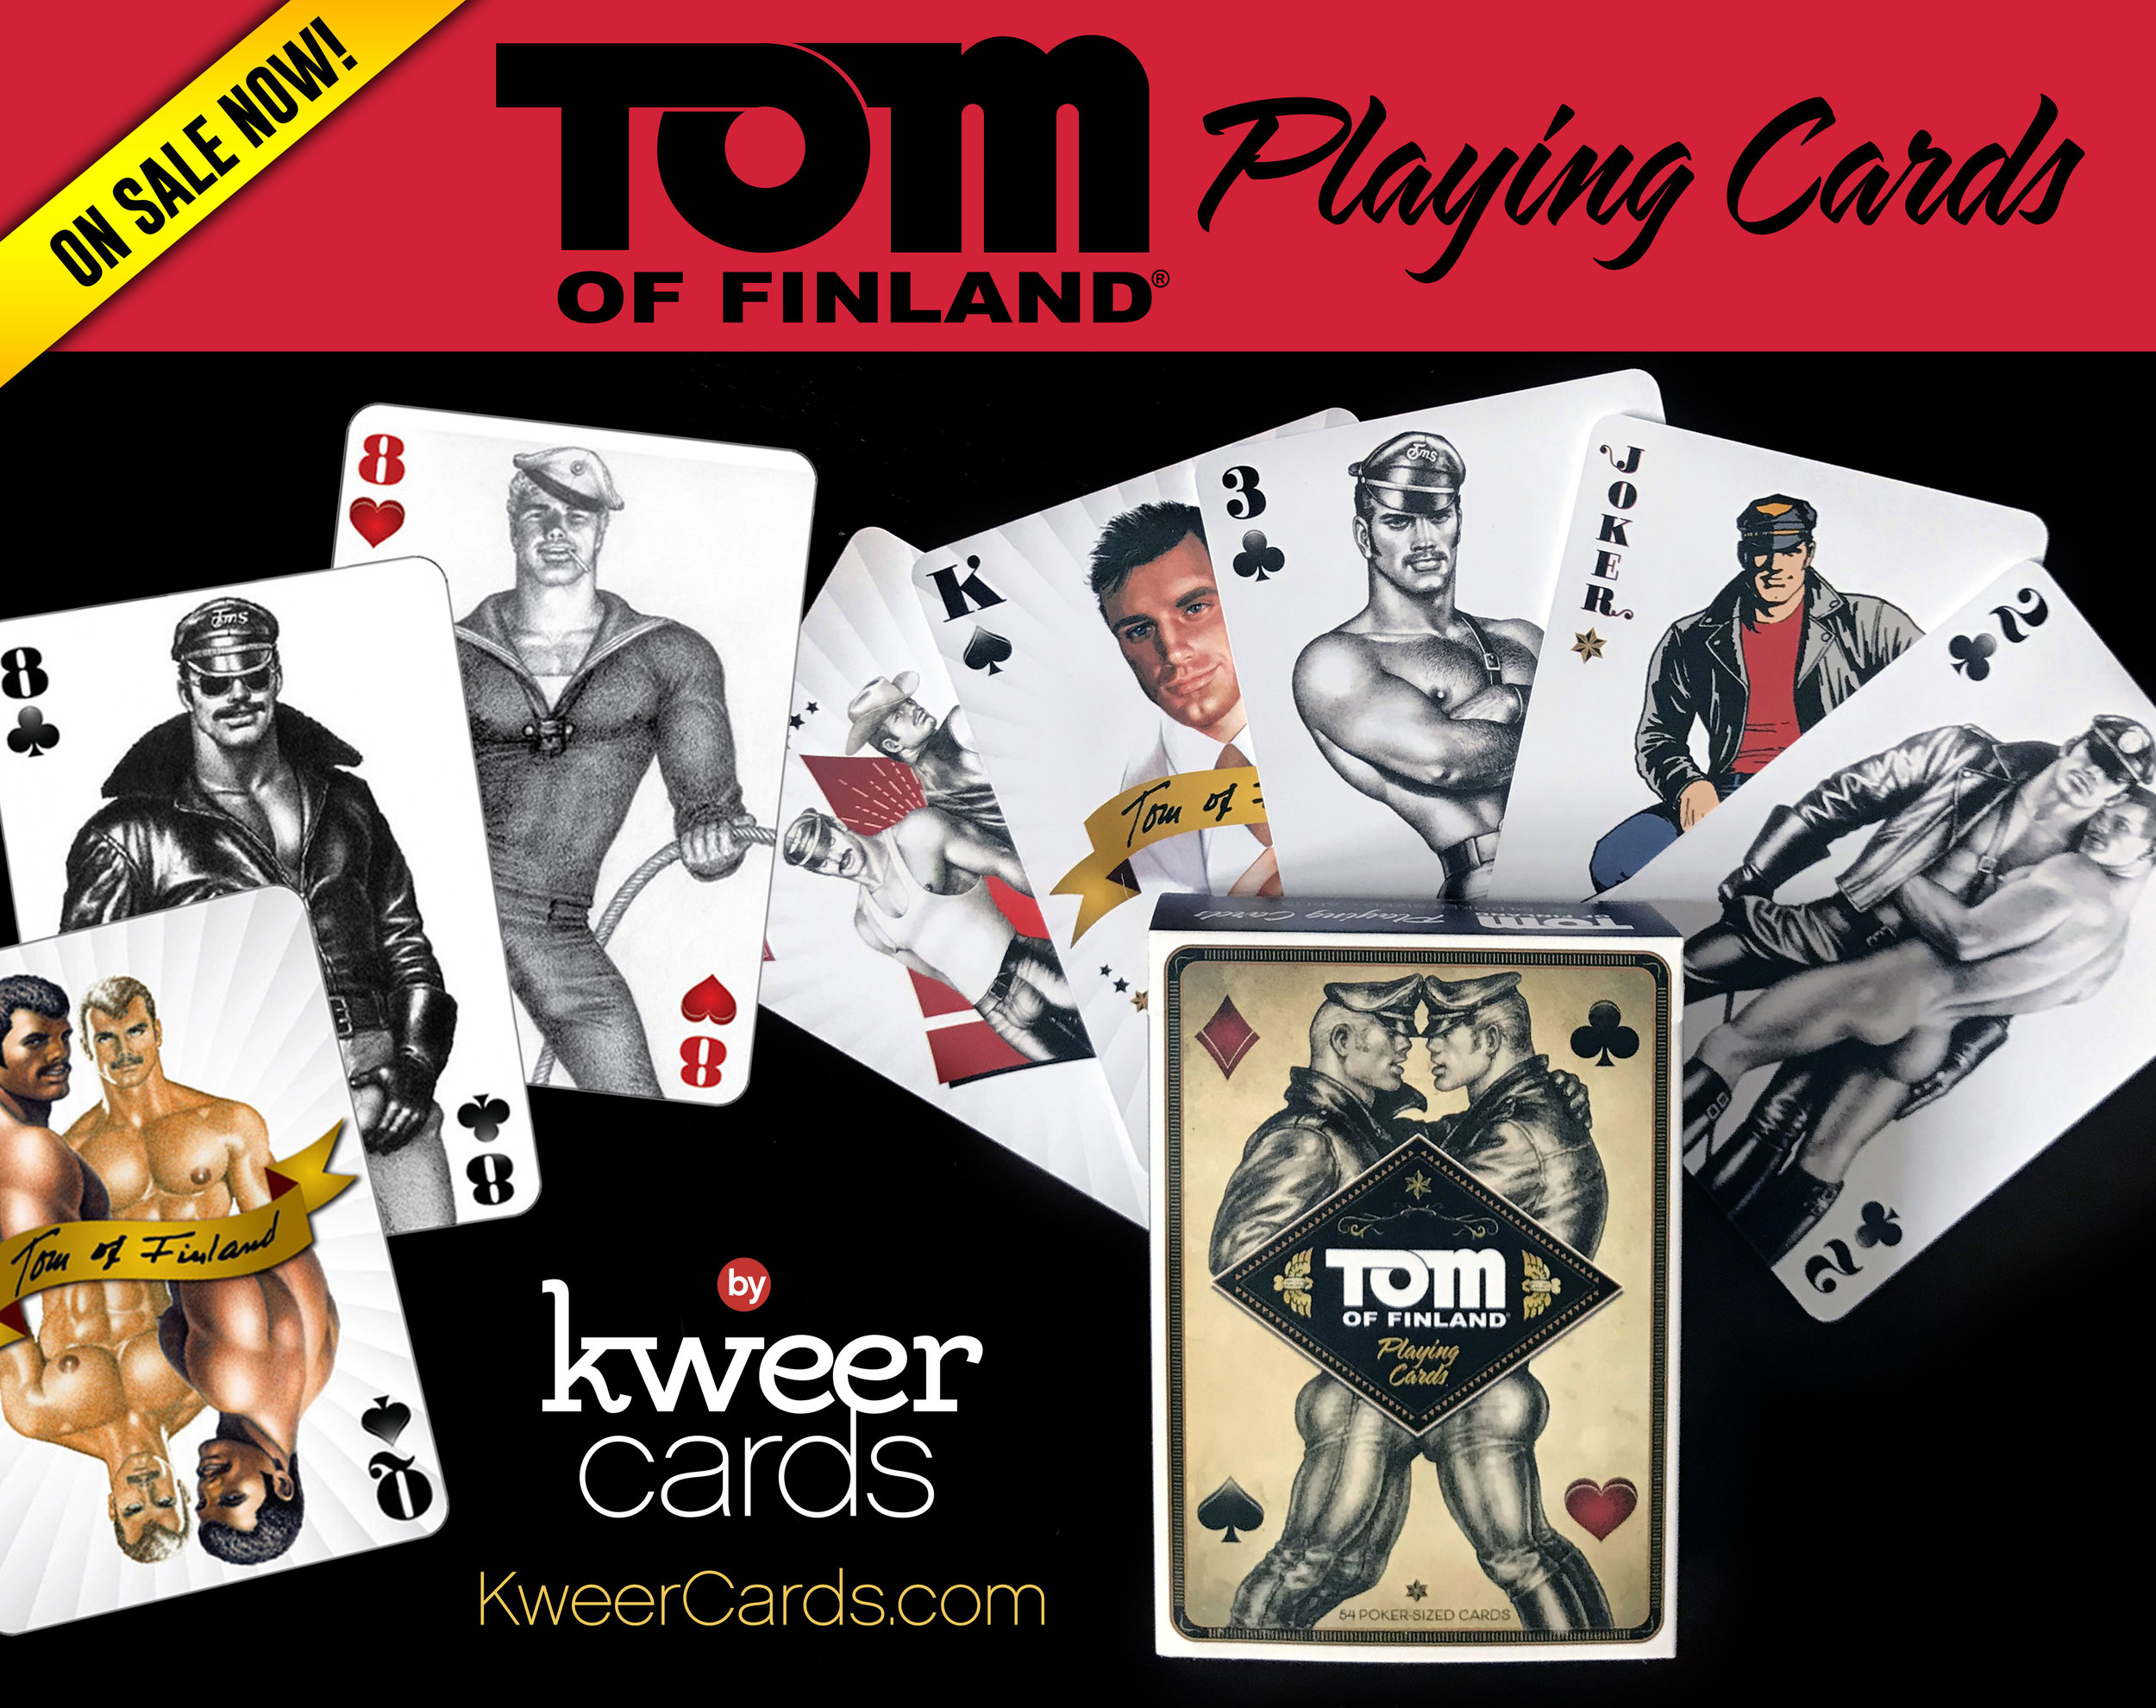 Tom of finland playing cards Kweerr cards.jpg